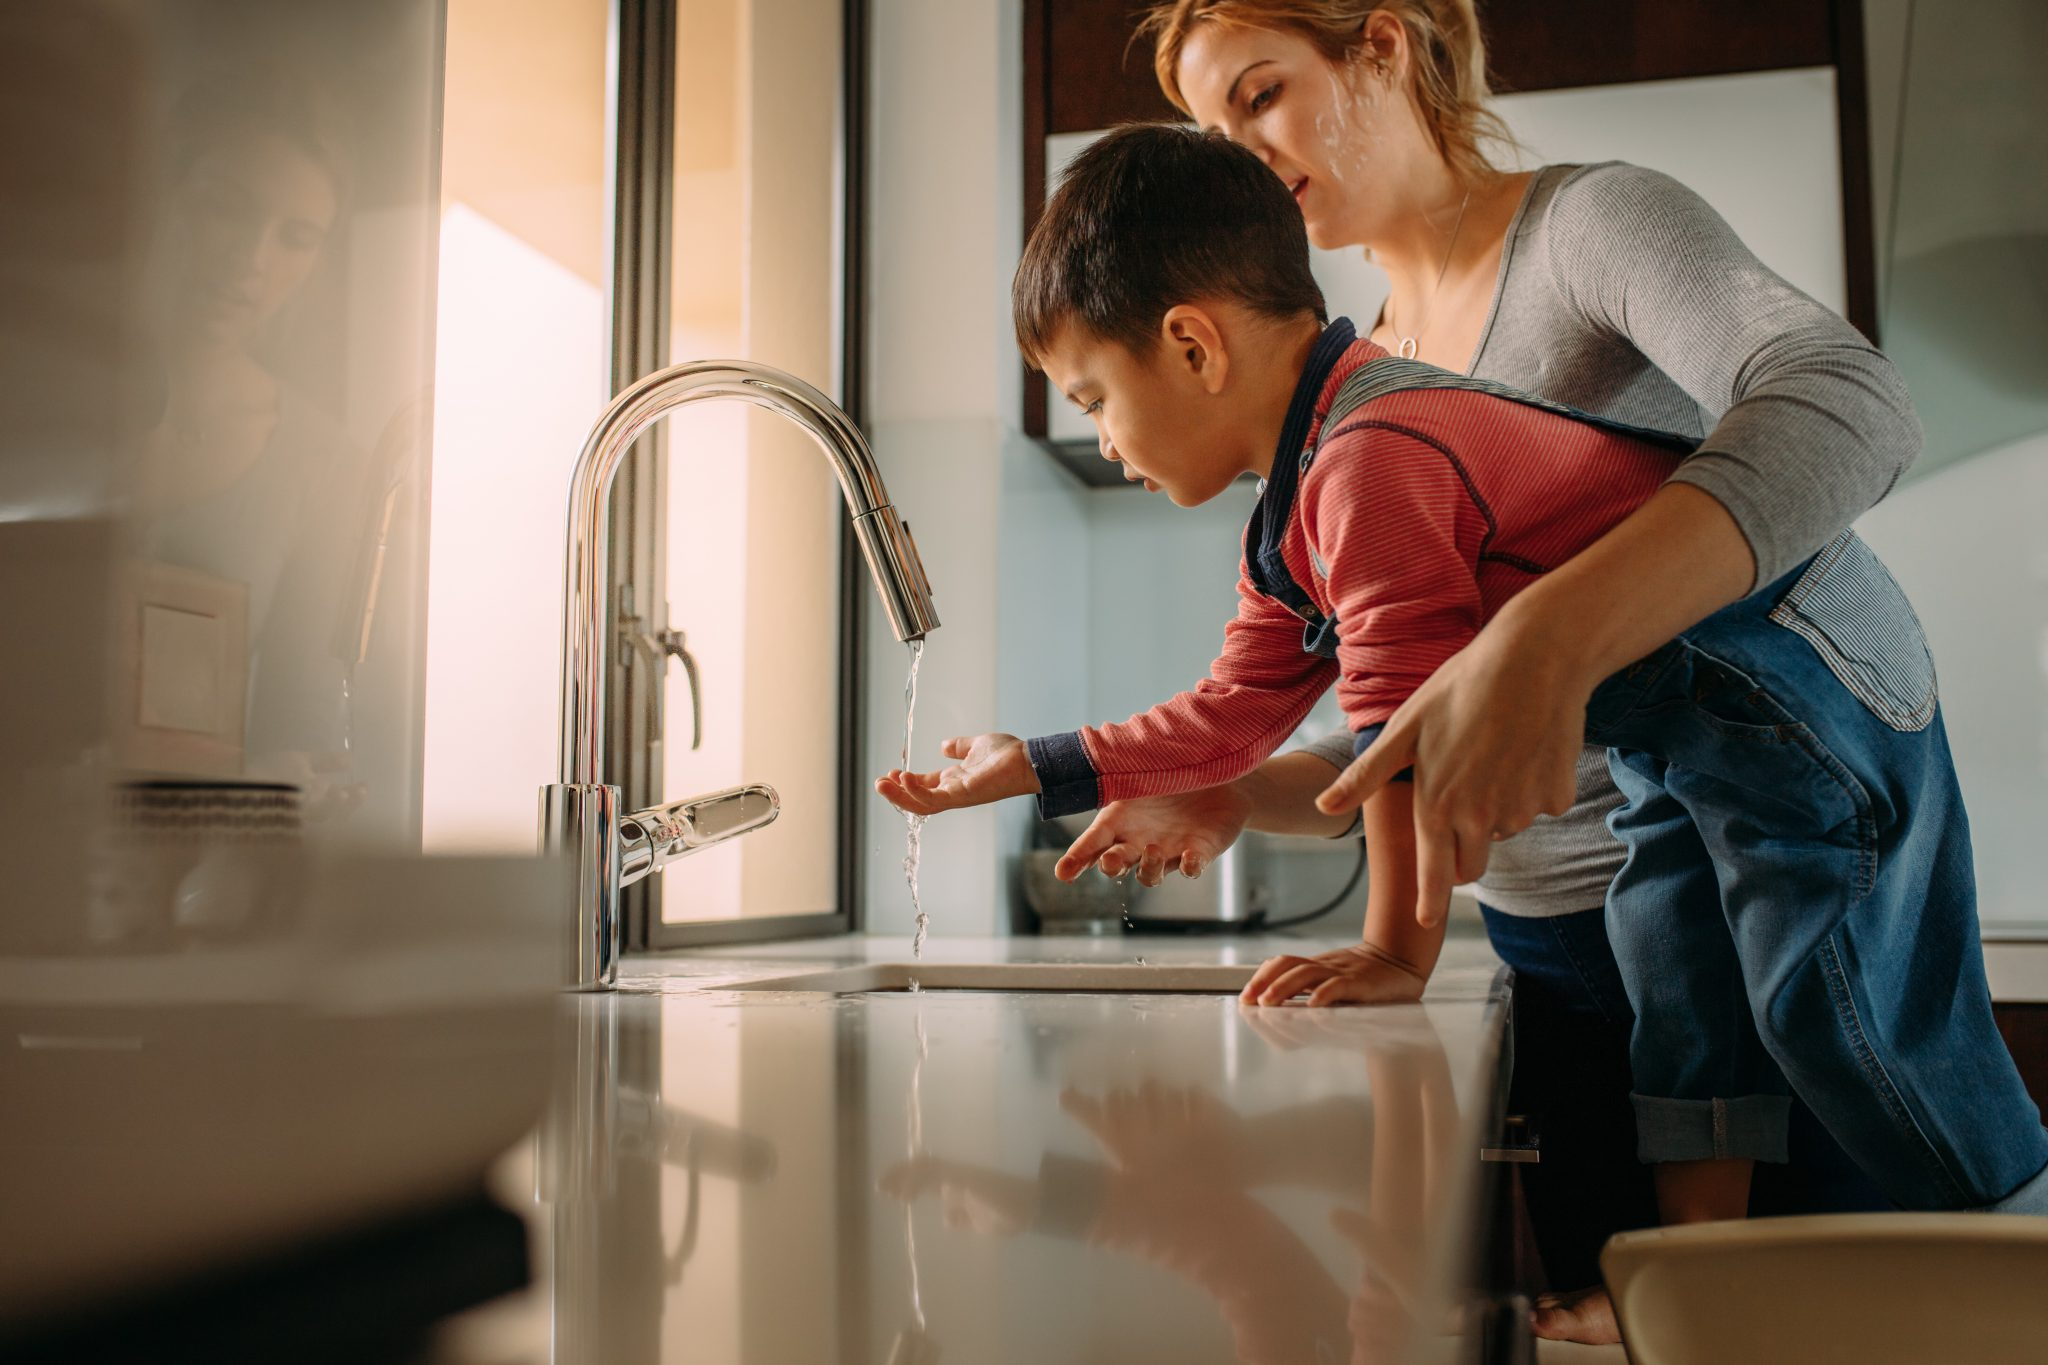 Mom helping son wash hands